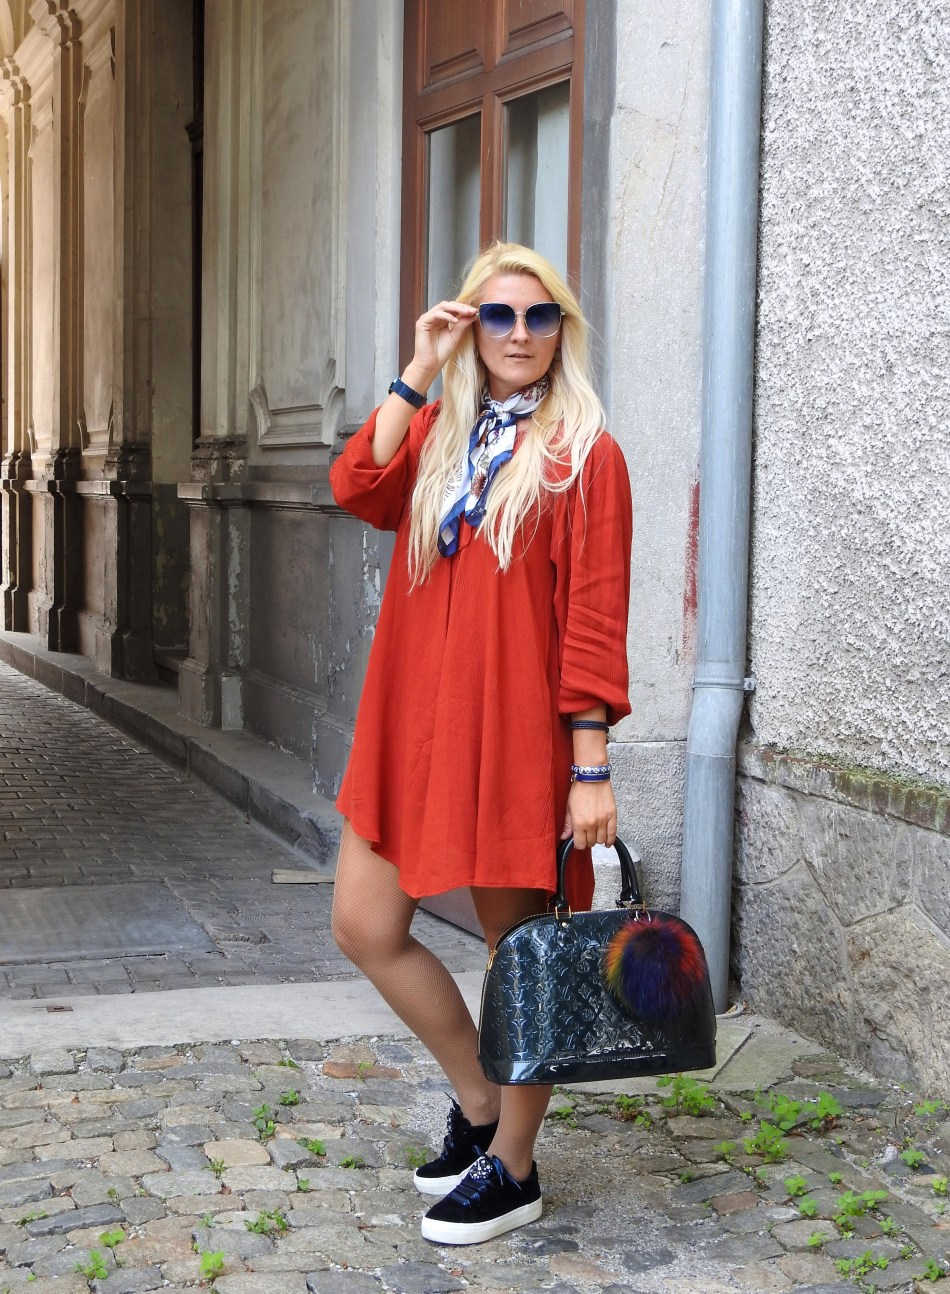 Velvet-Samt-Dress-Kleid-Herbstlook-Falllook-Louis-Vuitton-Bag-Sneakers-carrieslifestyle-Tamara-Prutsch